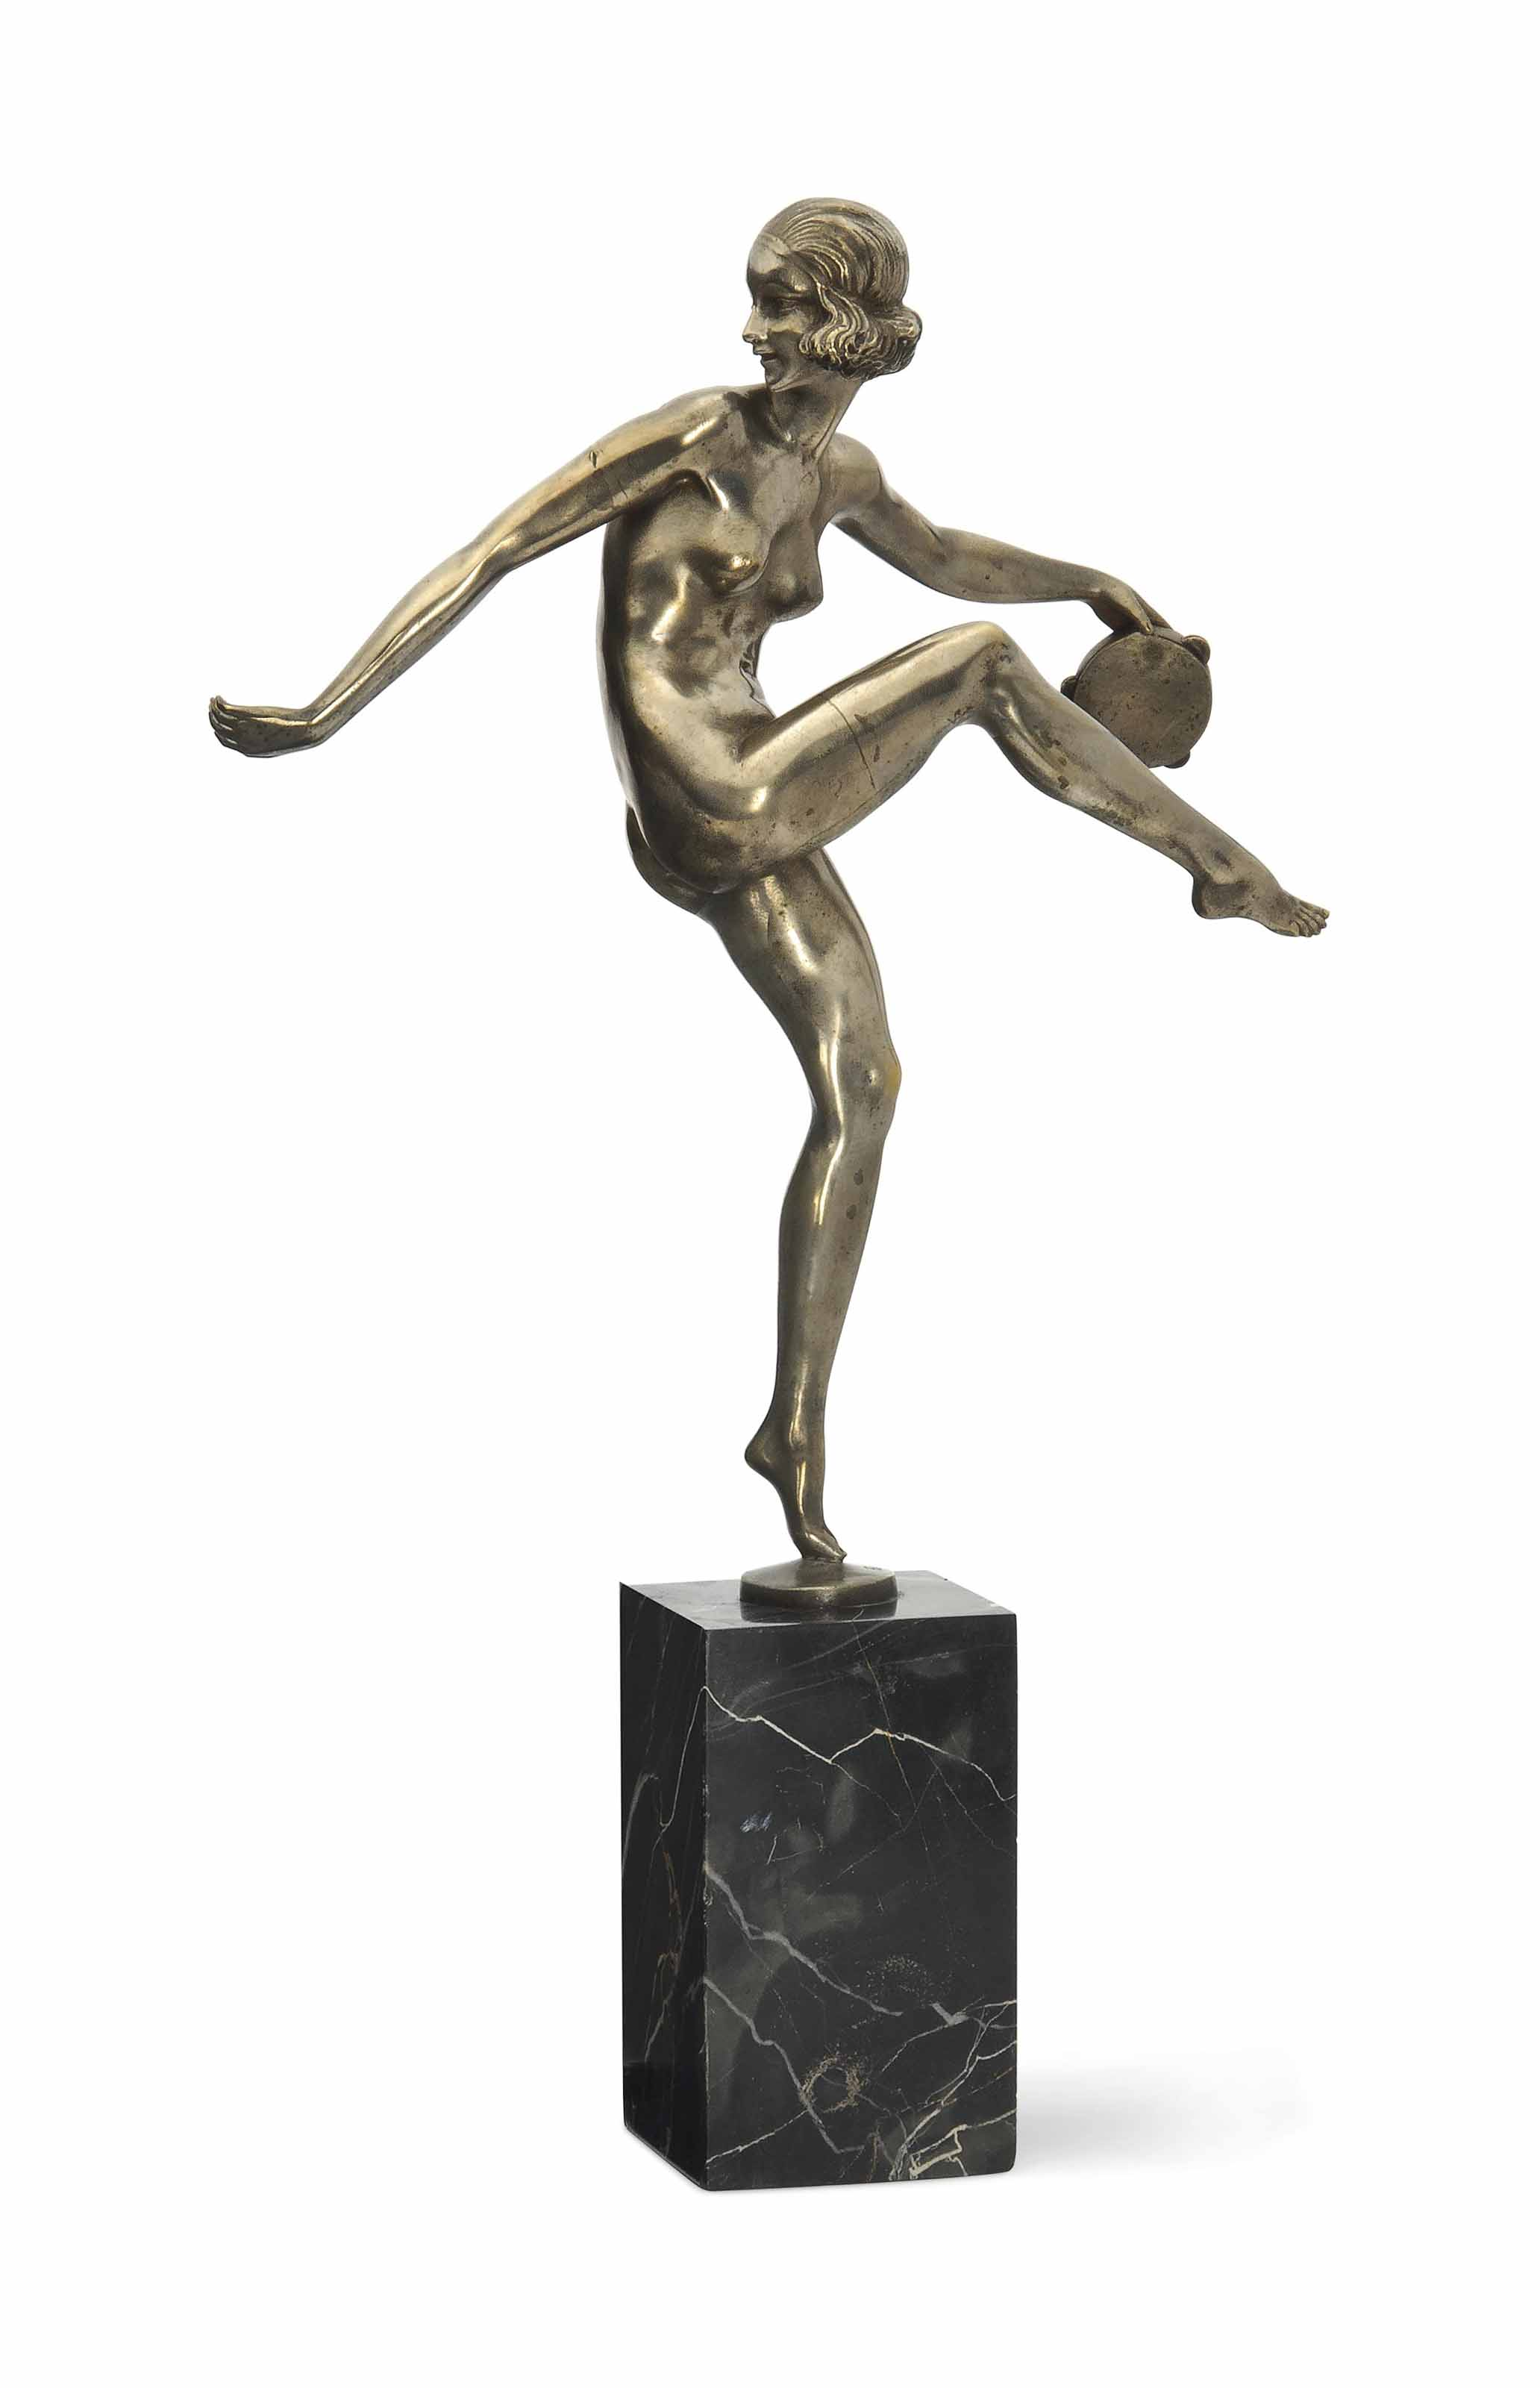 A PIERRE LAUREL SILVERED-BRONZE FIGURE